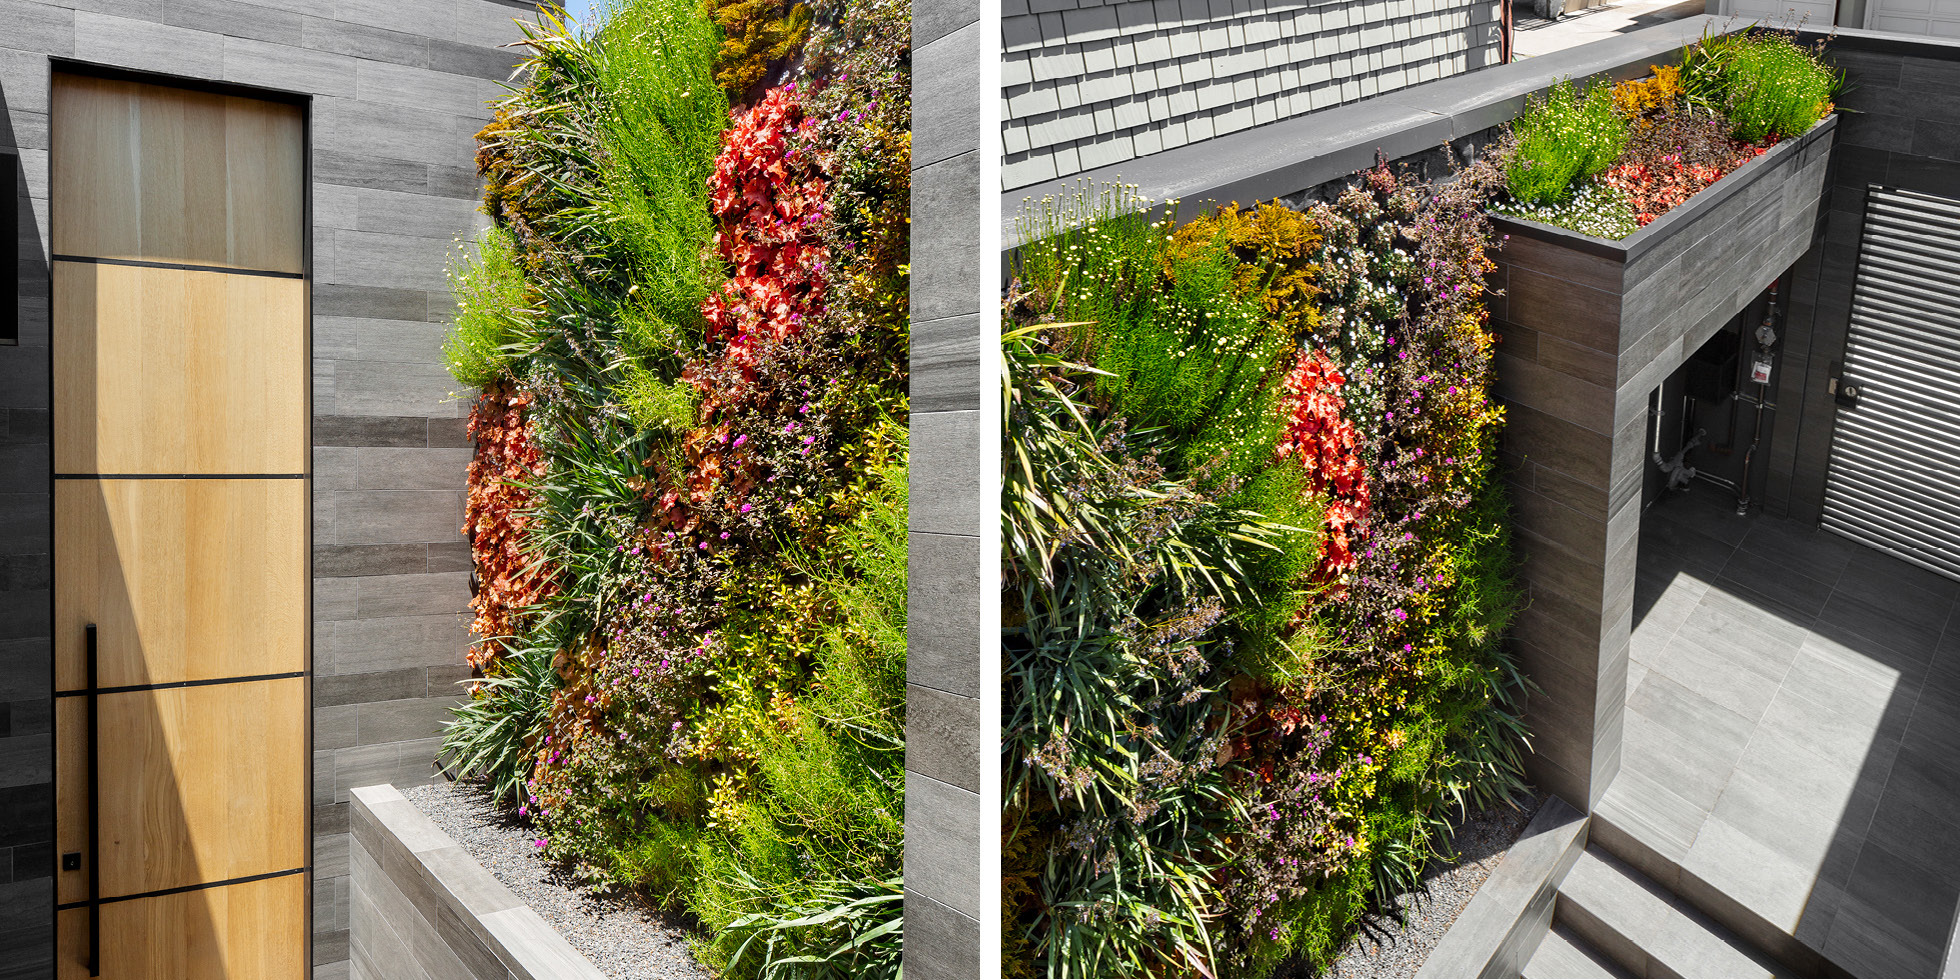 San Francisco Residence Living Wall by Habitat Horticulture - View 1